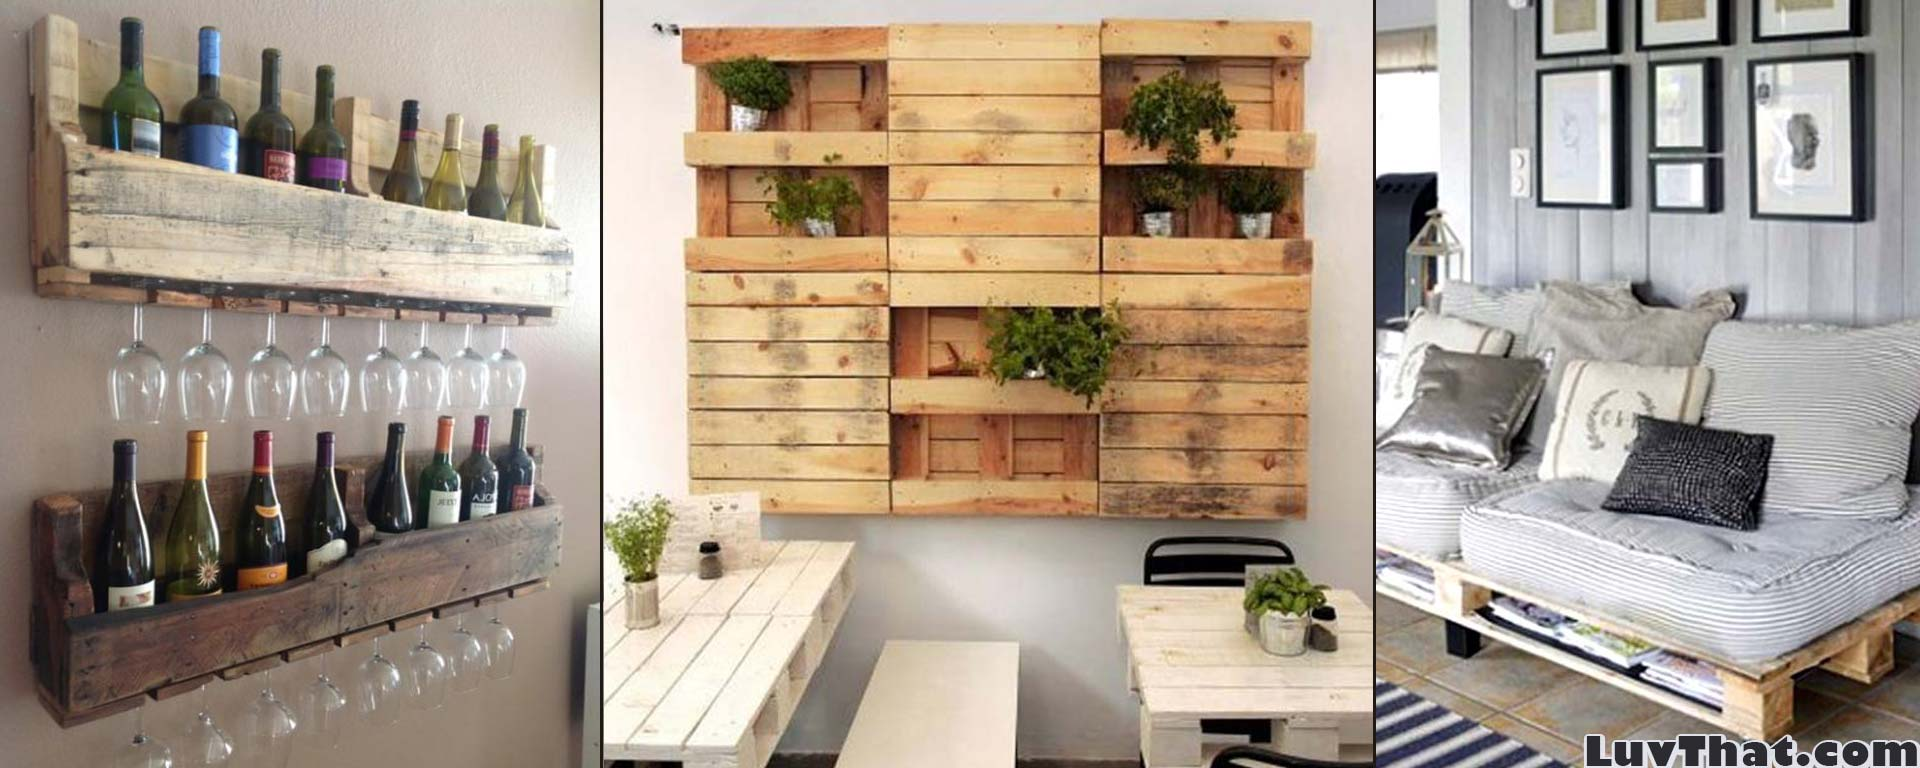 Pallet Furniture Pictures Cool Wood Pallet Furniture Ideas Luvthat